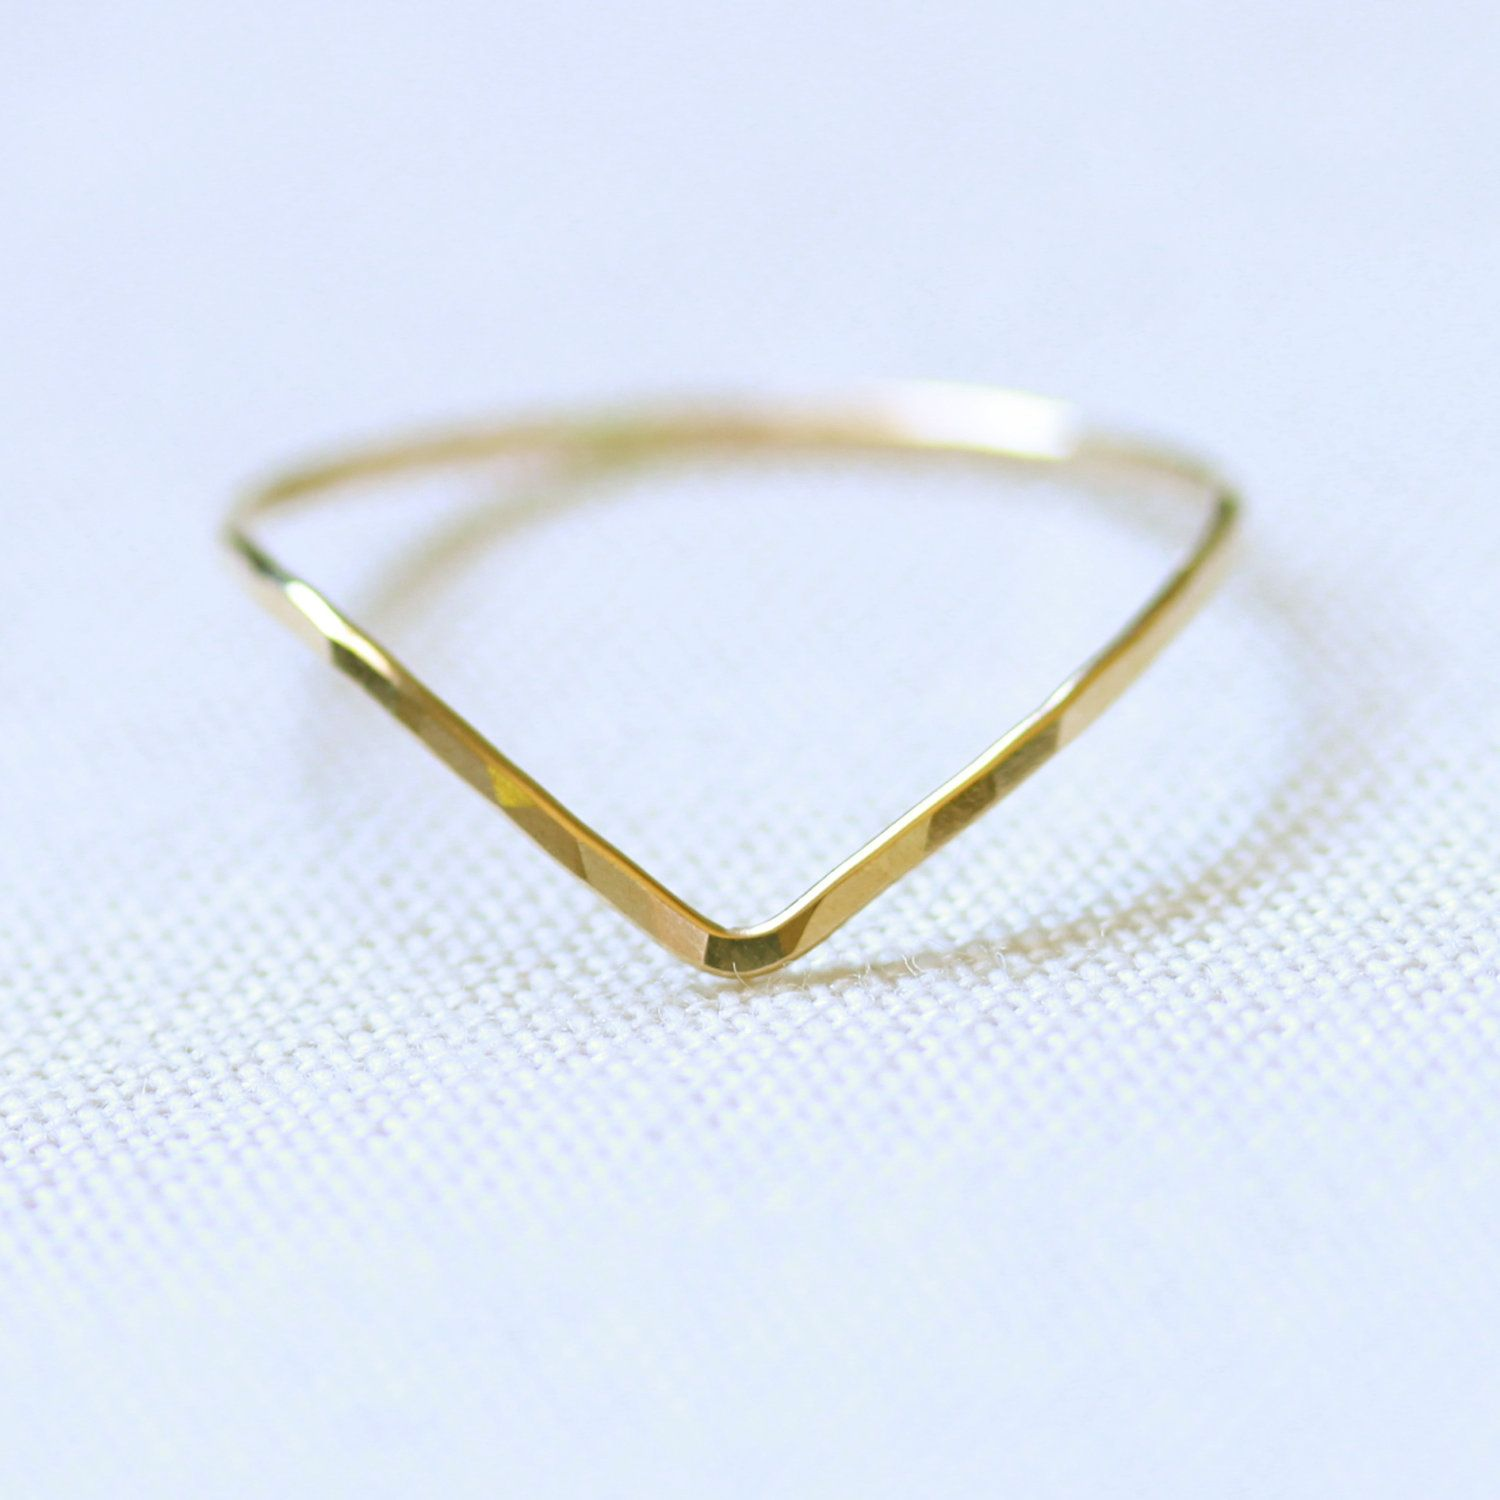 Chevron Thread of Gold Ring - Rose or Yellow - Tiny Hammered Stacking Ring - Delicate Jewelry. $9.75, via Etsy.